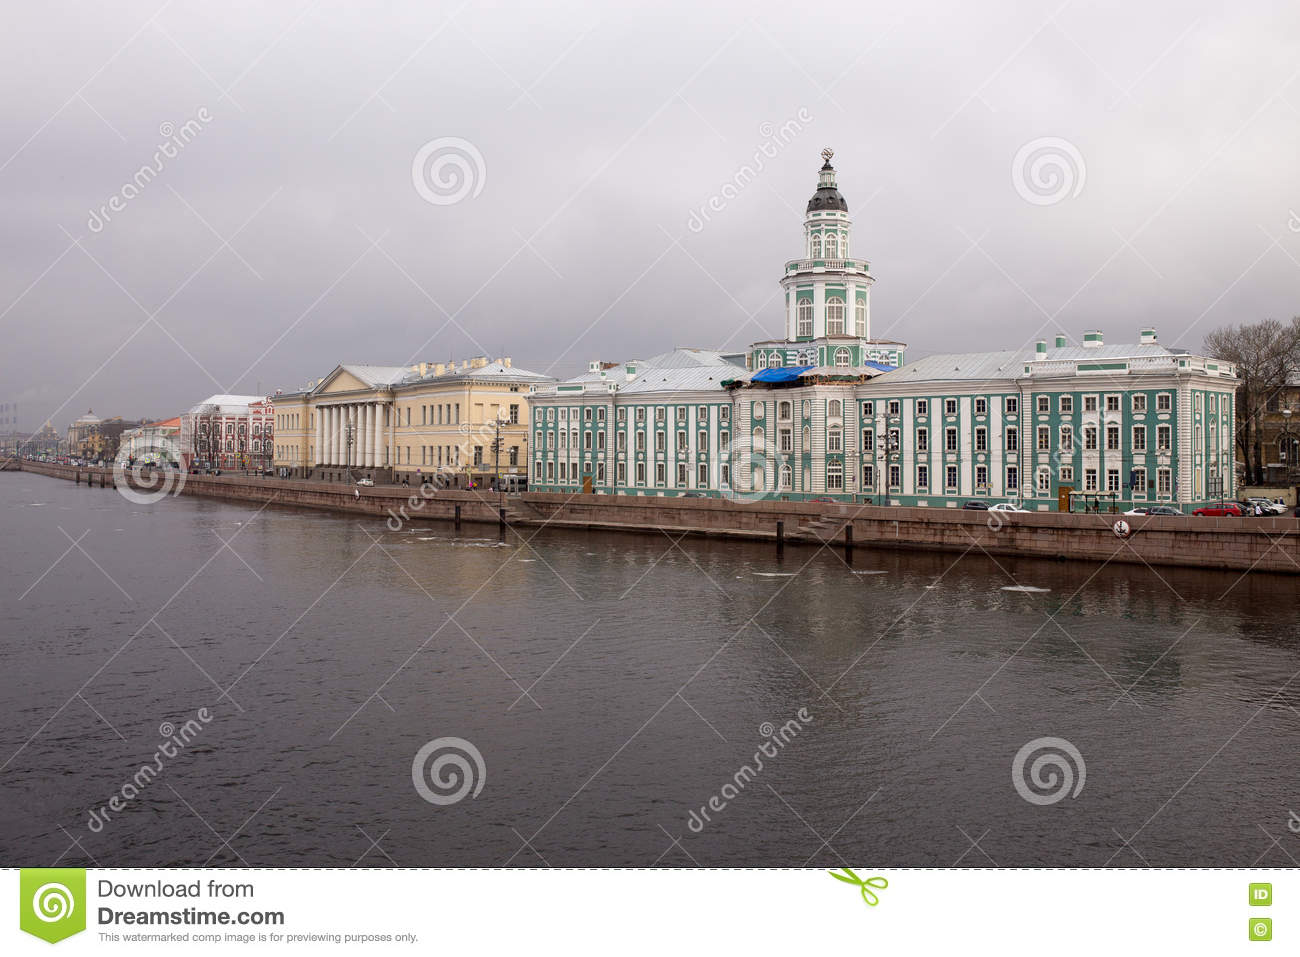 View of the river and the waterfront on a cloudy day. Spring. Saint-Petersburg. Russia.